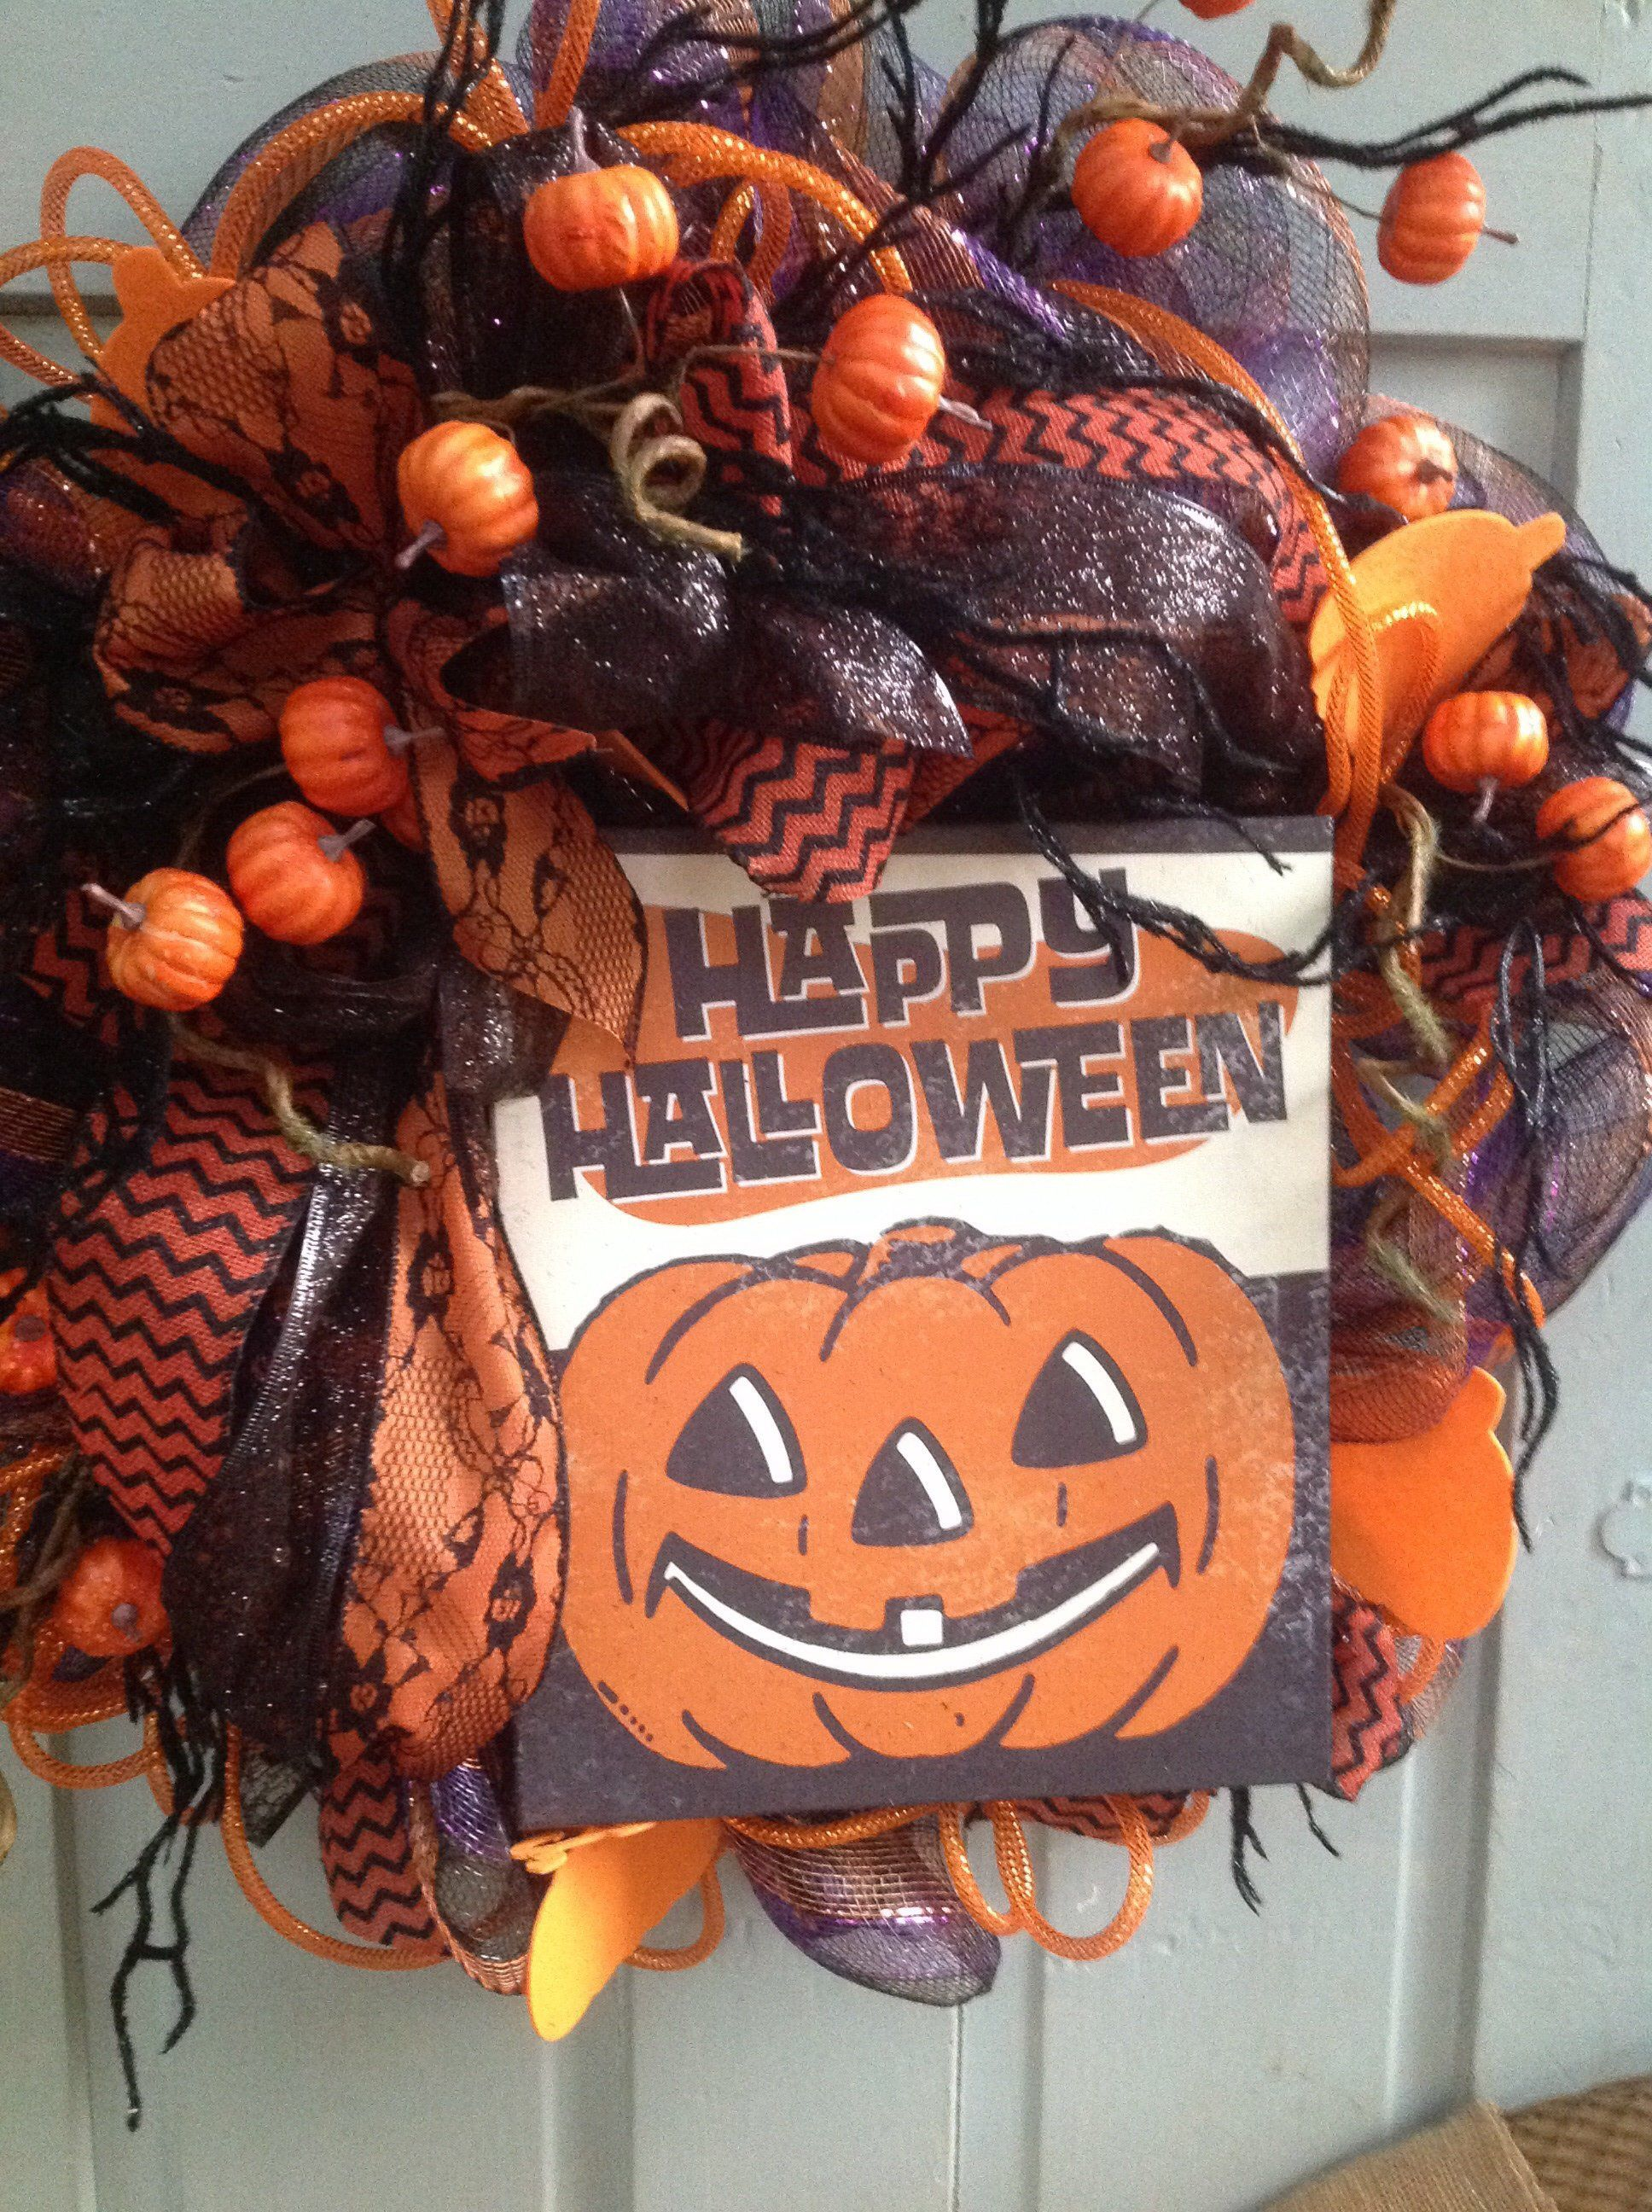 Excited To Share This Item From My Etsy Shop Happy Halloween Vintage Look Deco Mesh Wreath W Witch Halloween Wreath Deco Mesh Wreaths Halloween Decorations